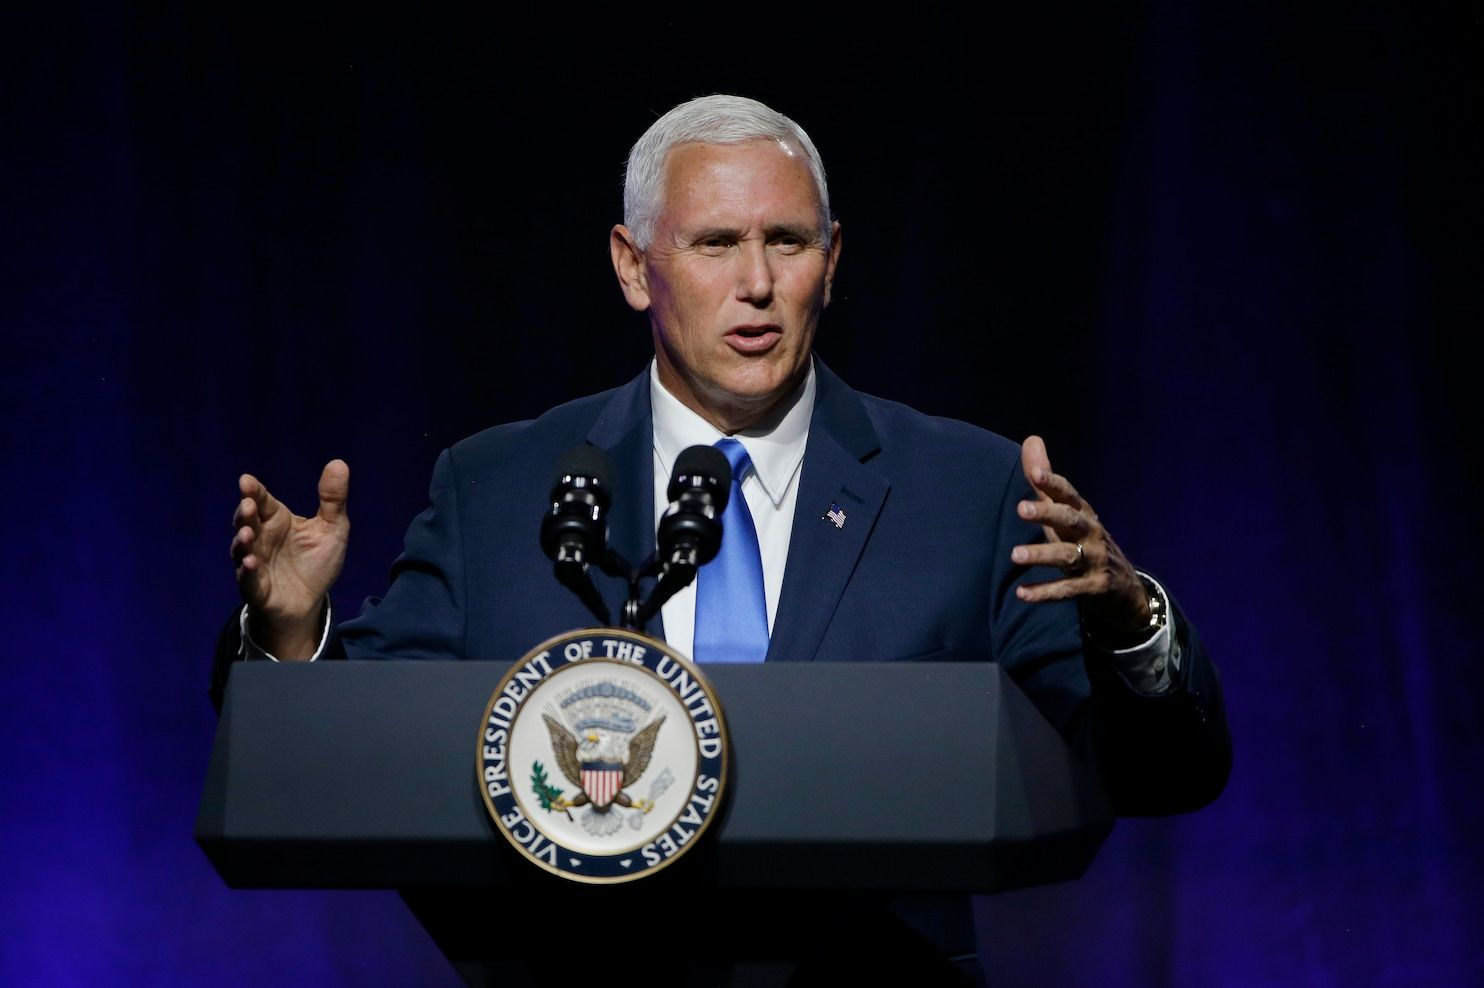 Vice President Pence's bushel of false and misleading claims about health care